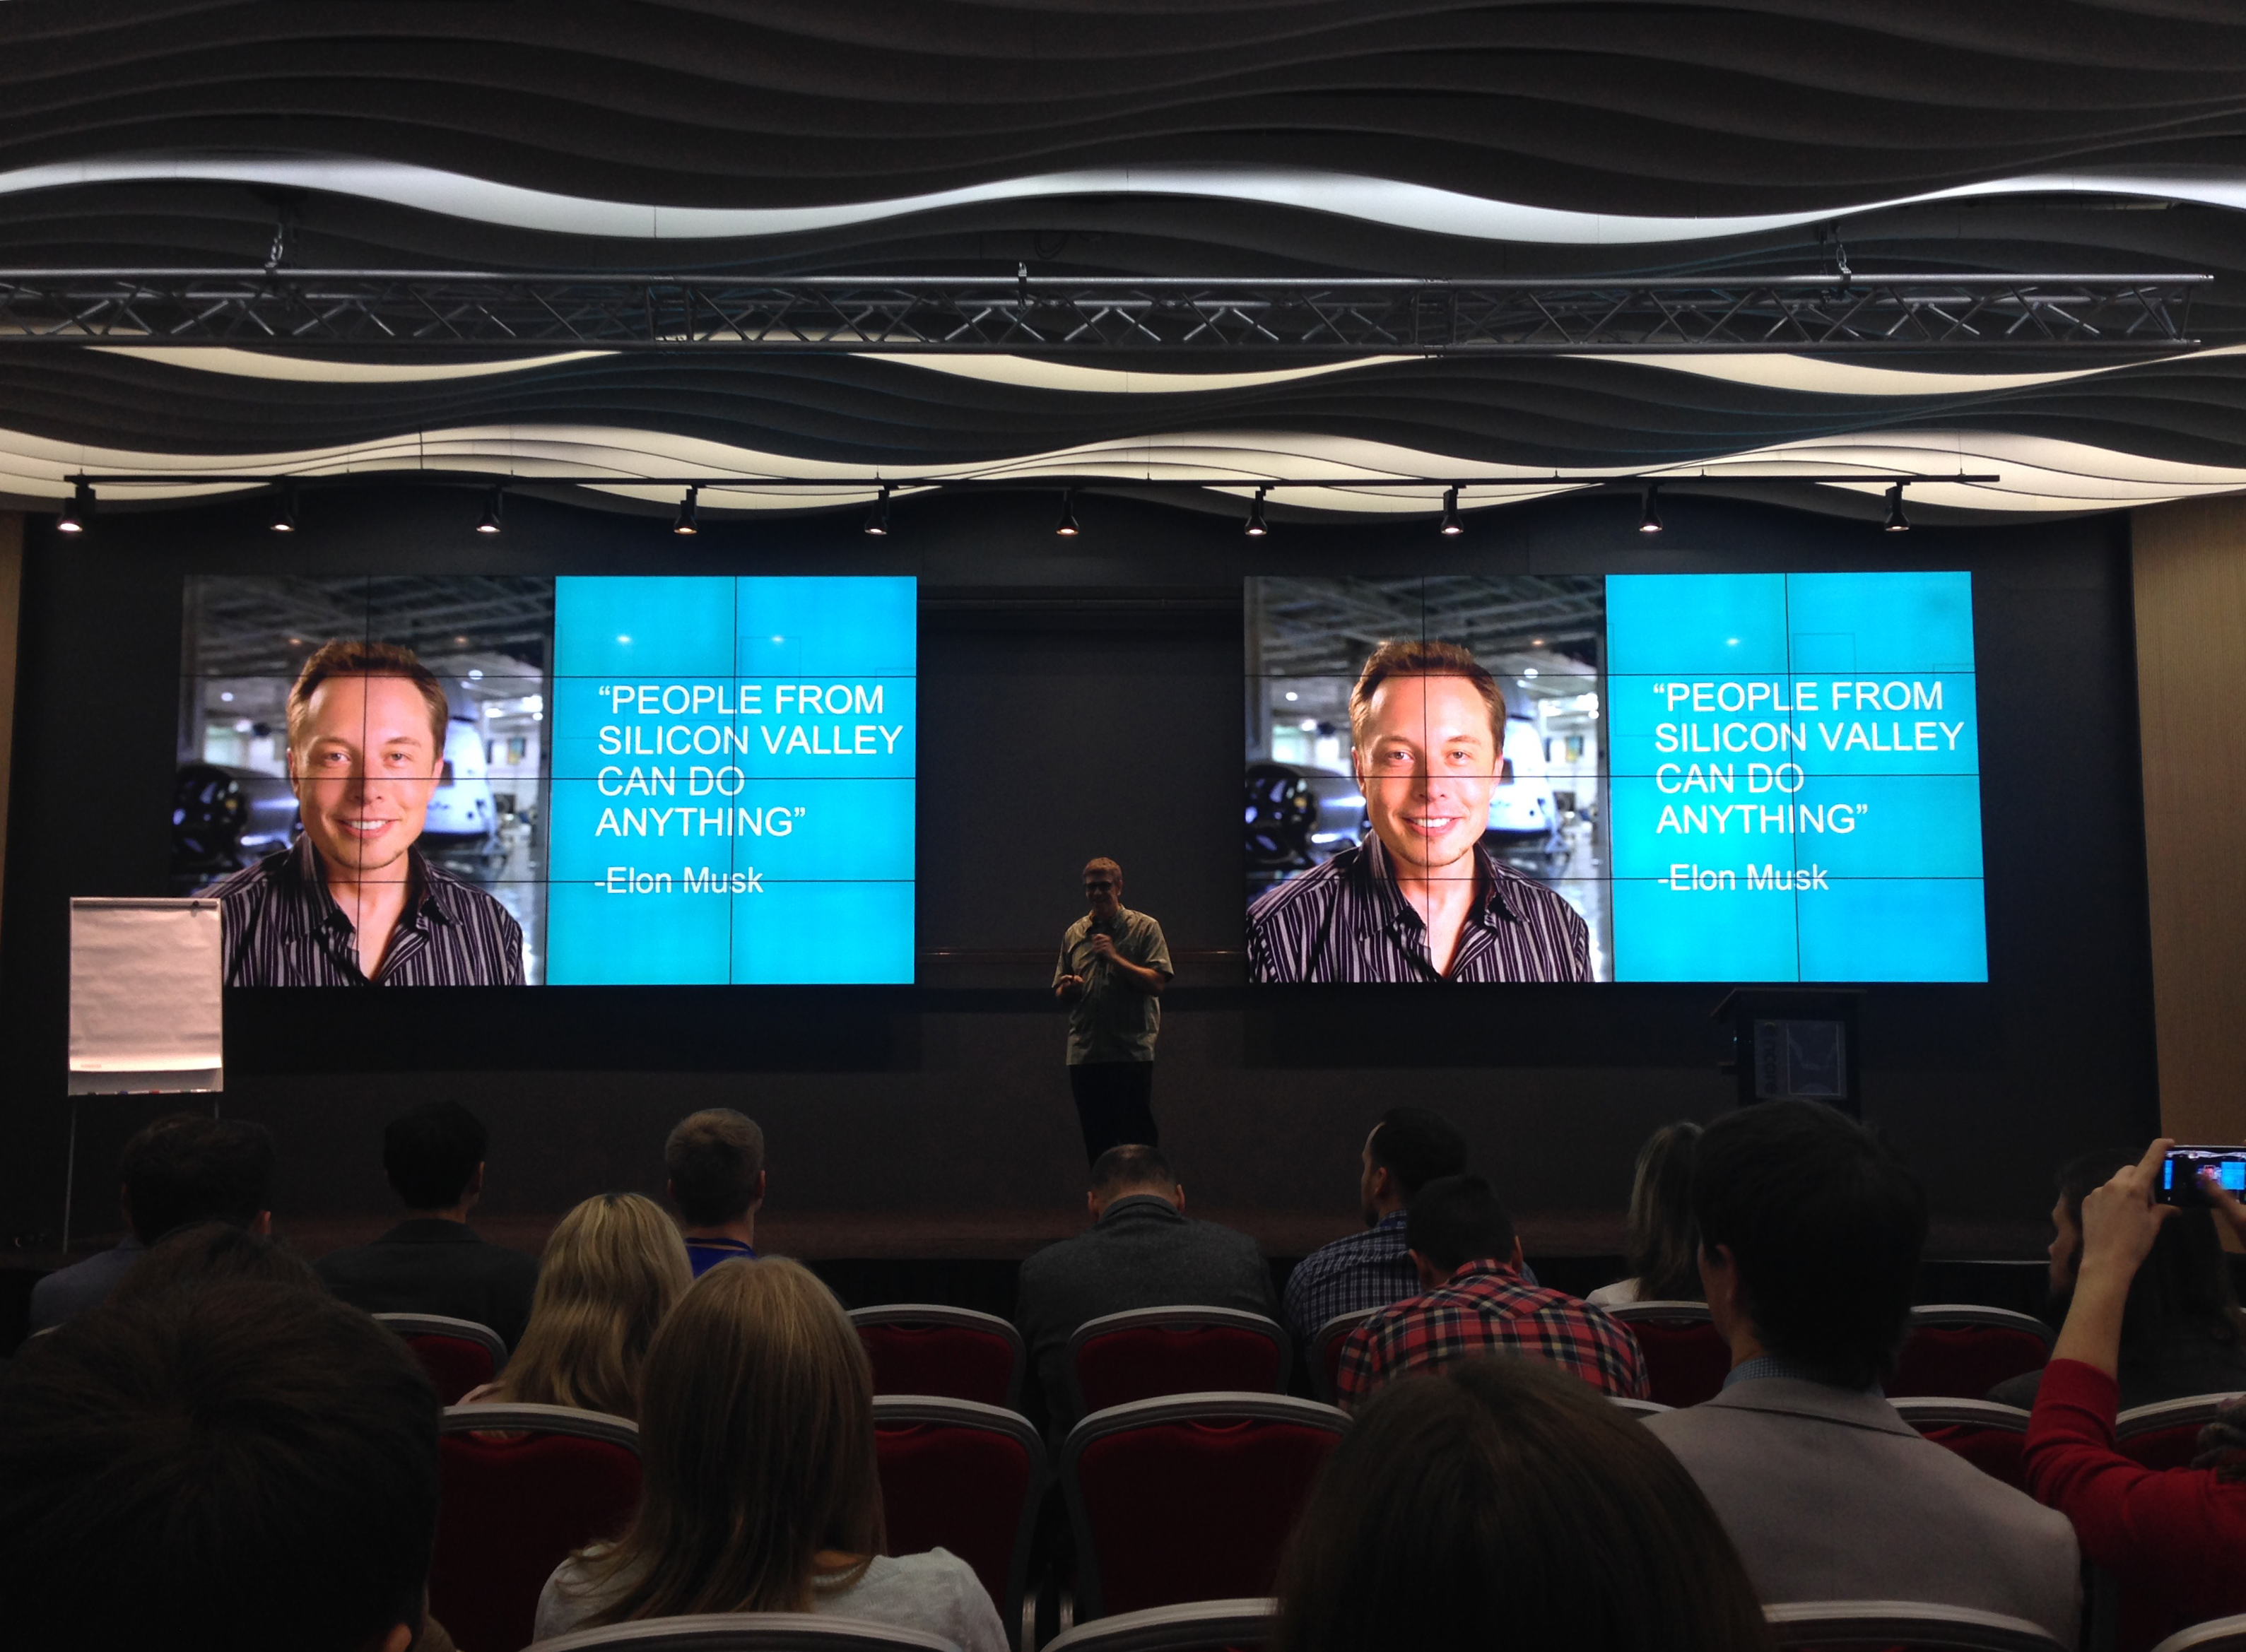 Slide with Elon Musk quote at Outsource People 2015